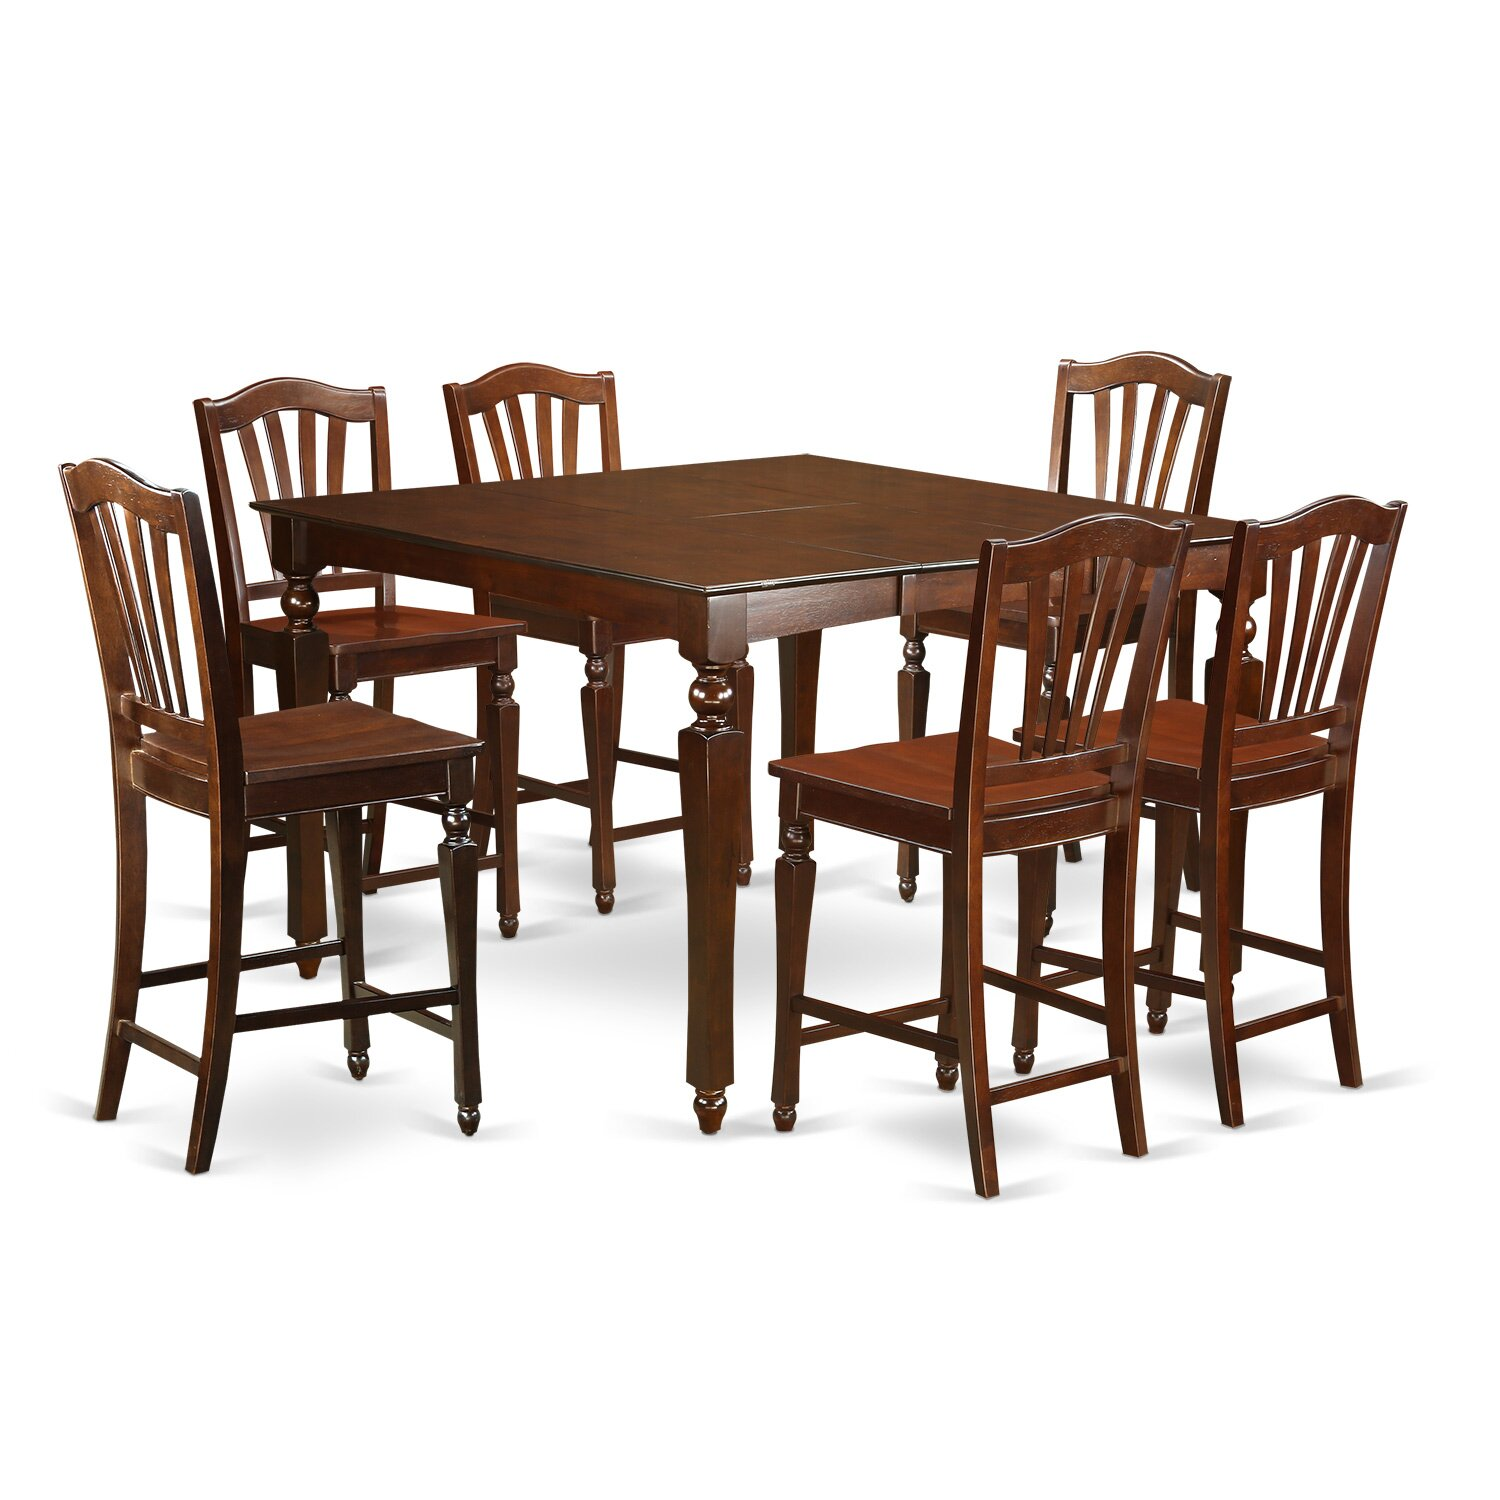 East west chelsea 7 piece counter height dining set amp for Furniture 7 credit reviews